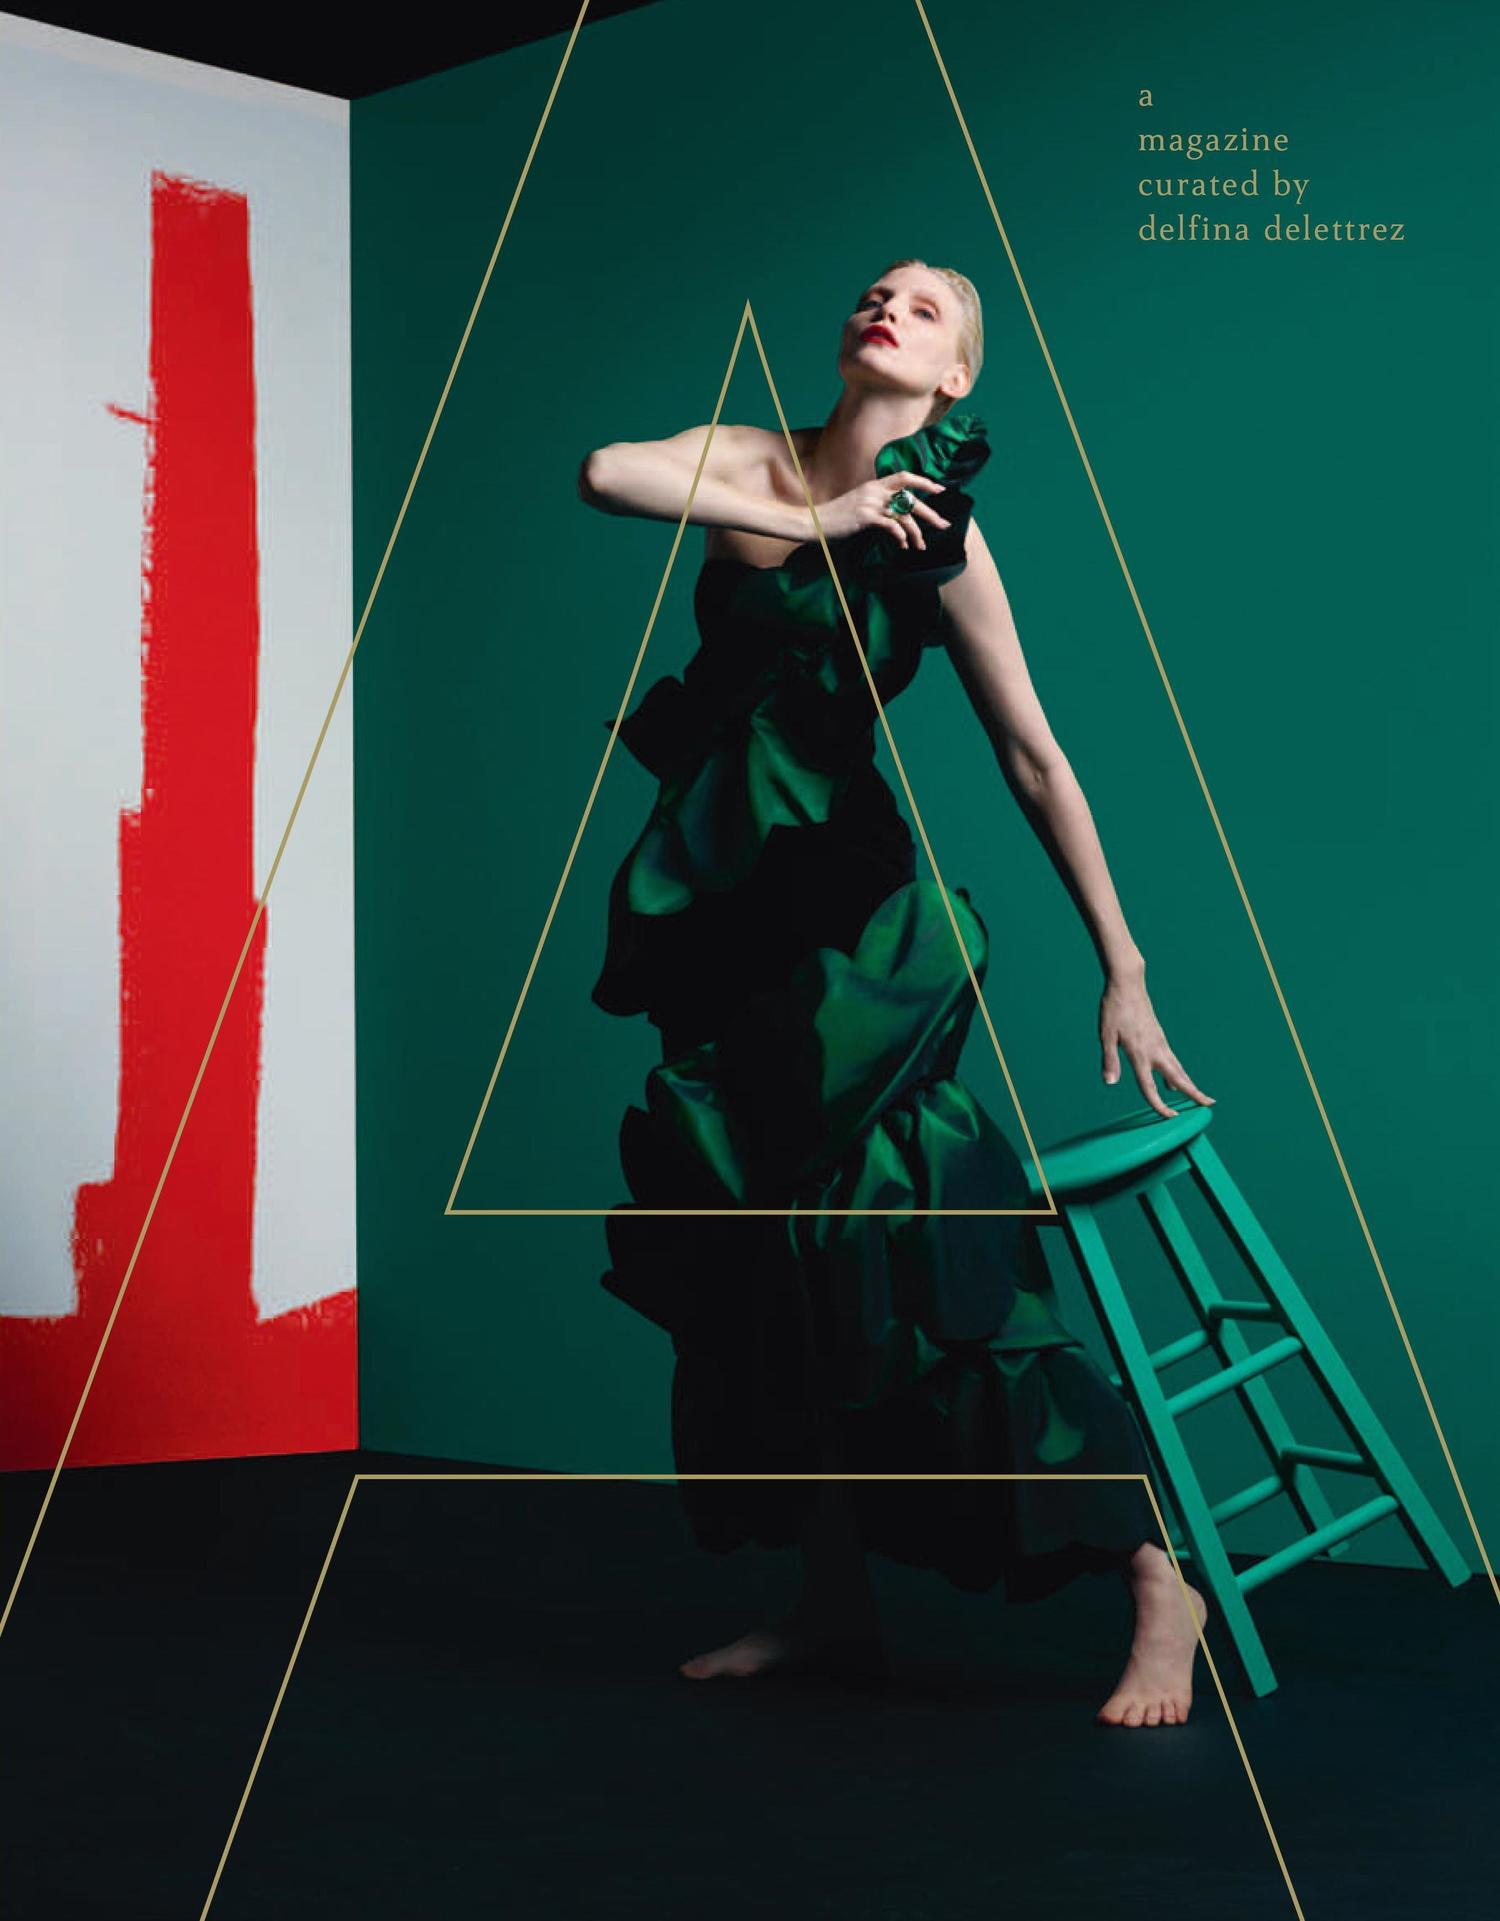 A Magazine; Curated by Delfina Delettrez Issue 14